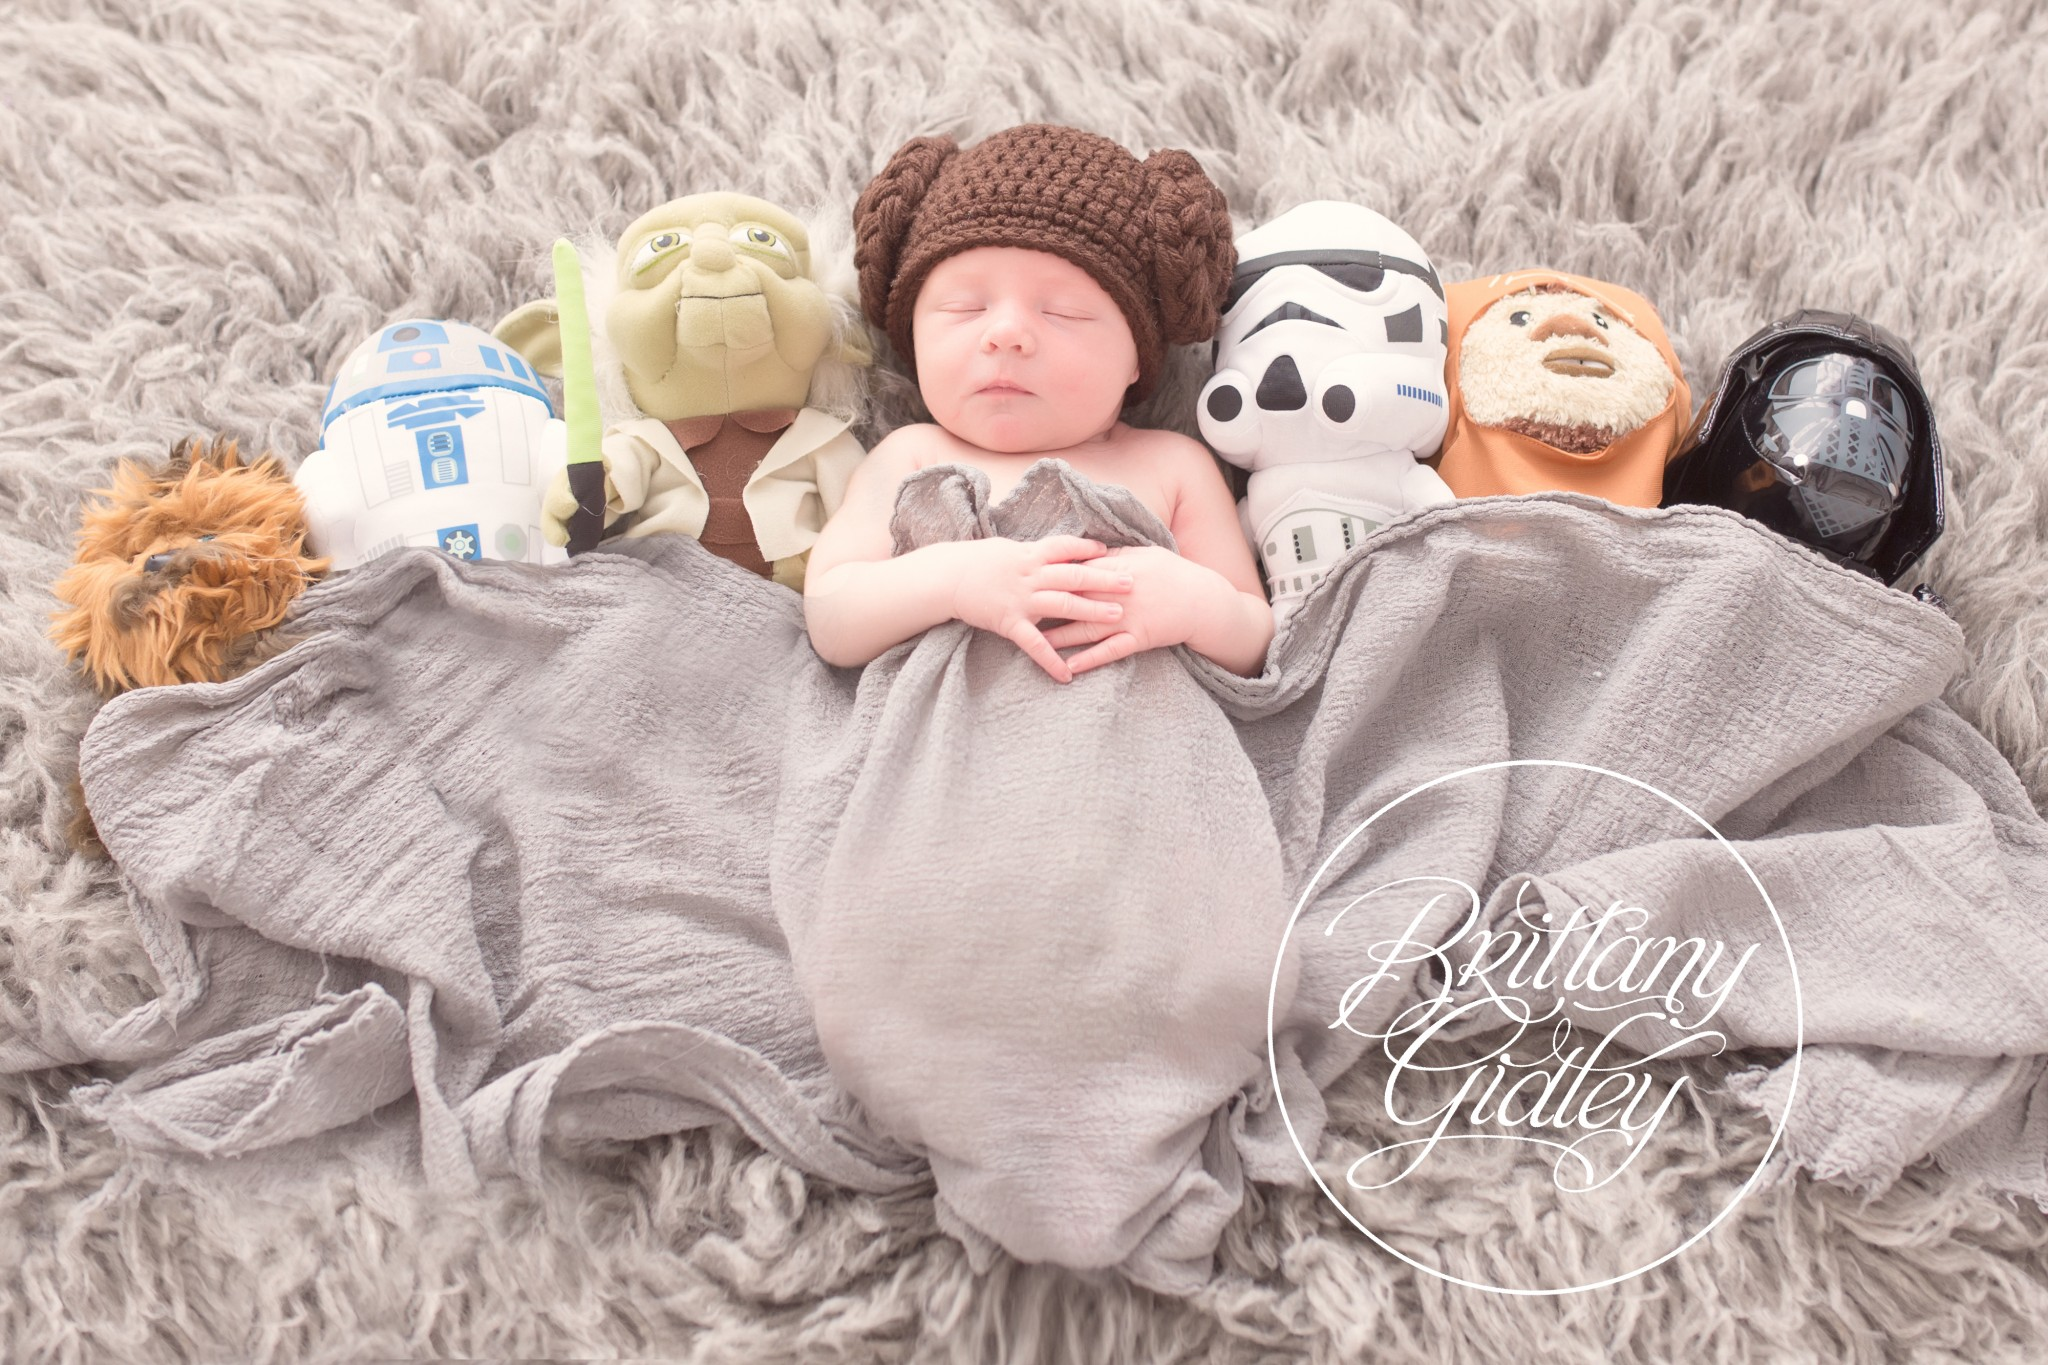 Star wars newborn newborn baby photo shoot start with the best cleveland ohio brittany gidley photography llc